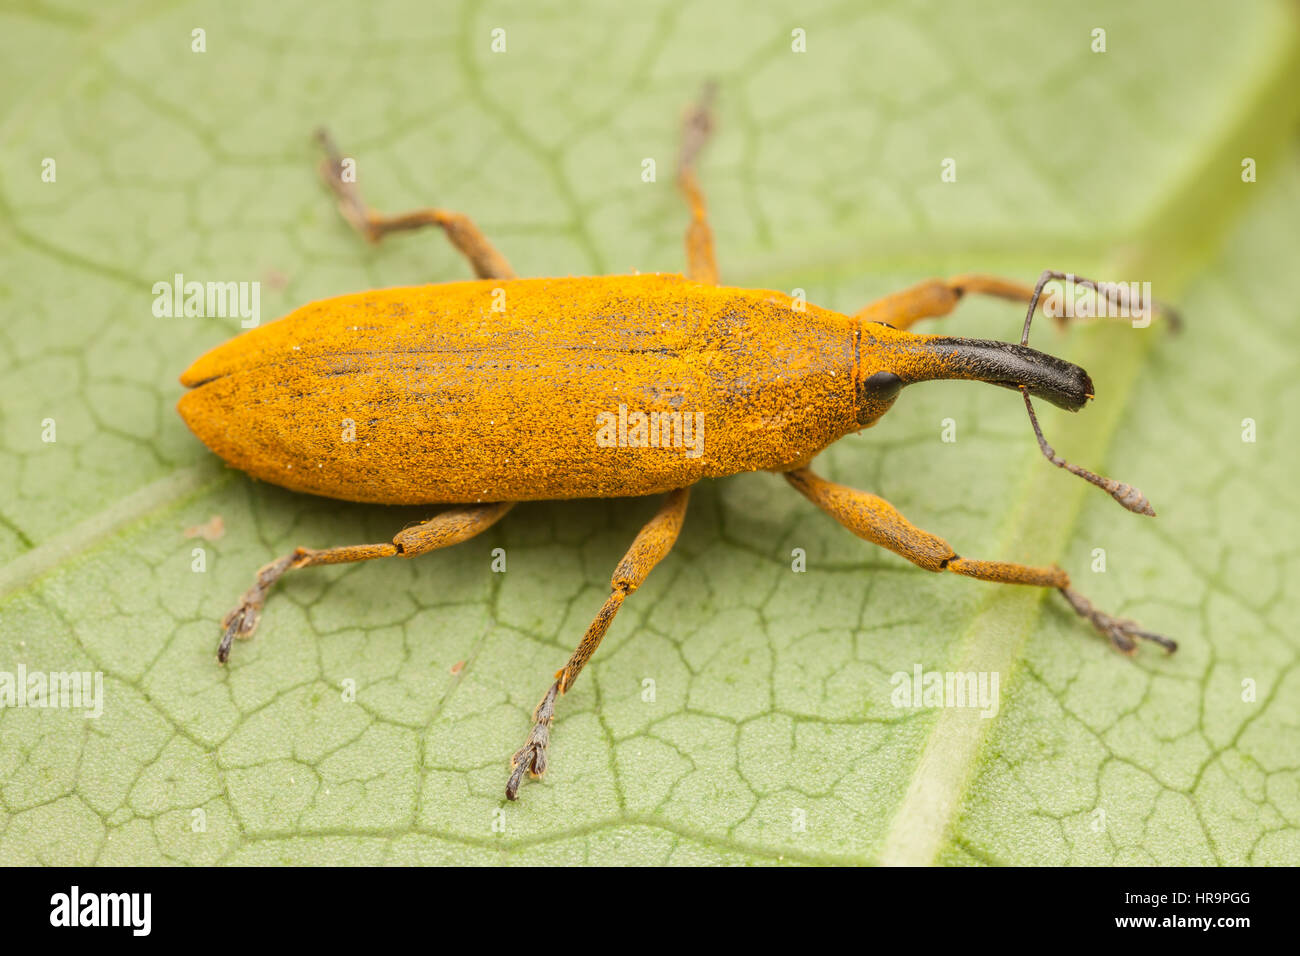 A Rhubarb Weevil (Lixus concavus) on a leaf. - Stock Image